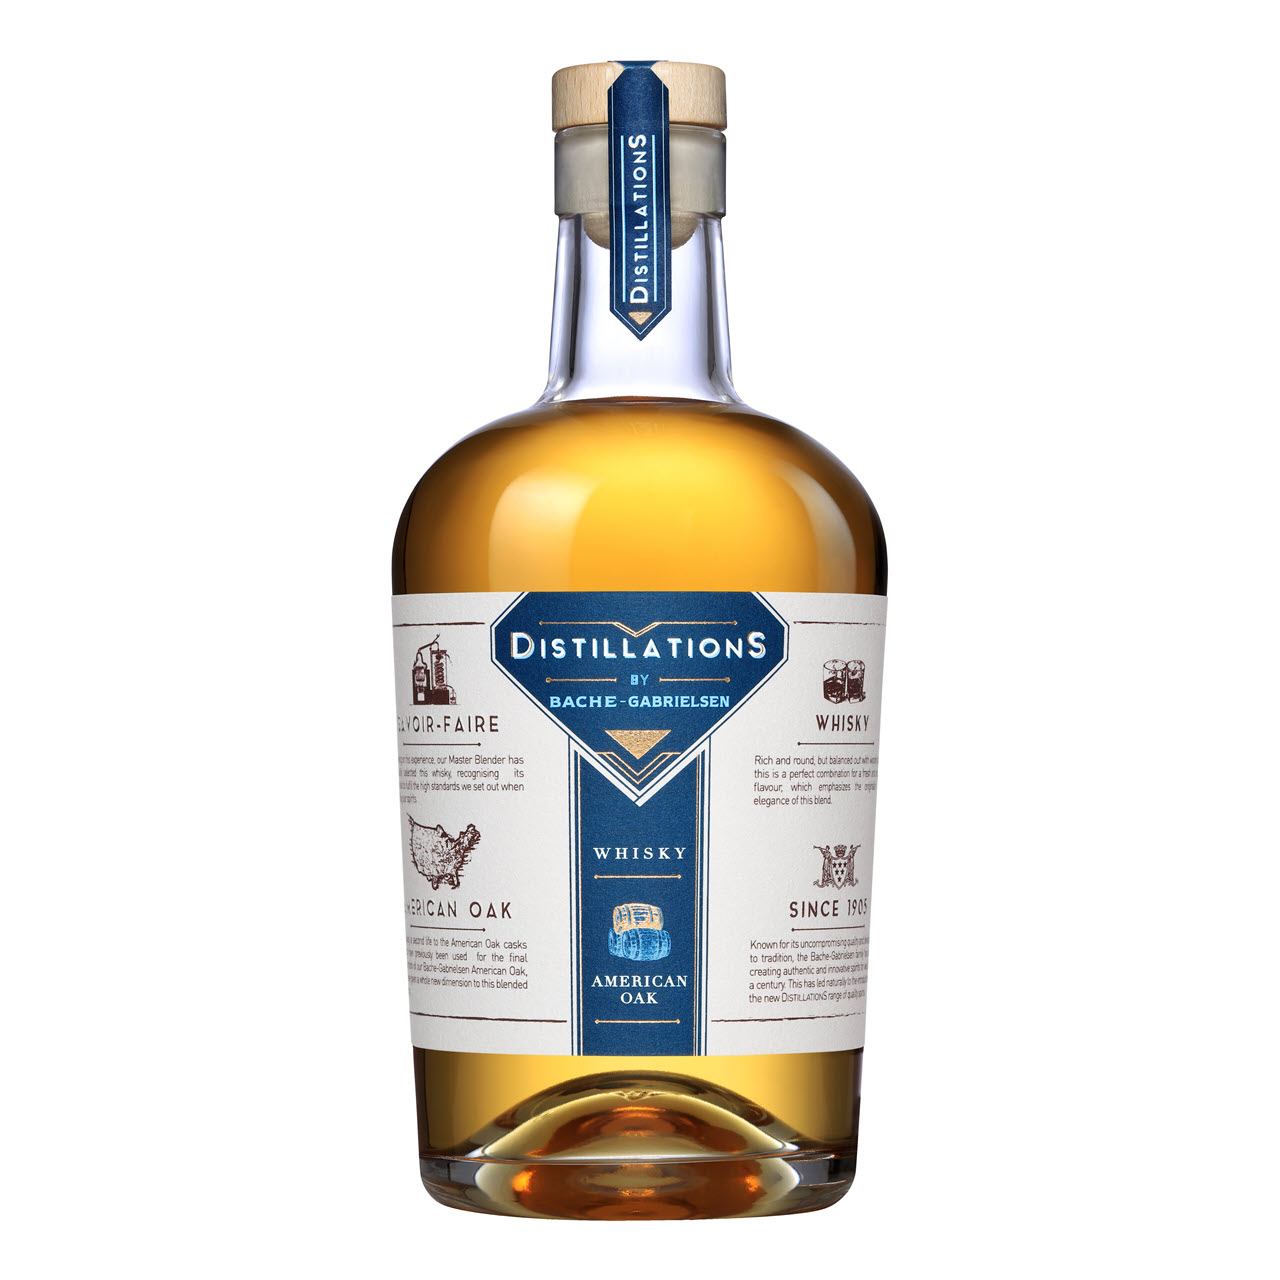 Distillations Whisky by Bache-Gabrielsen